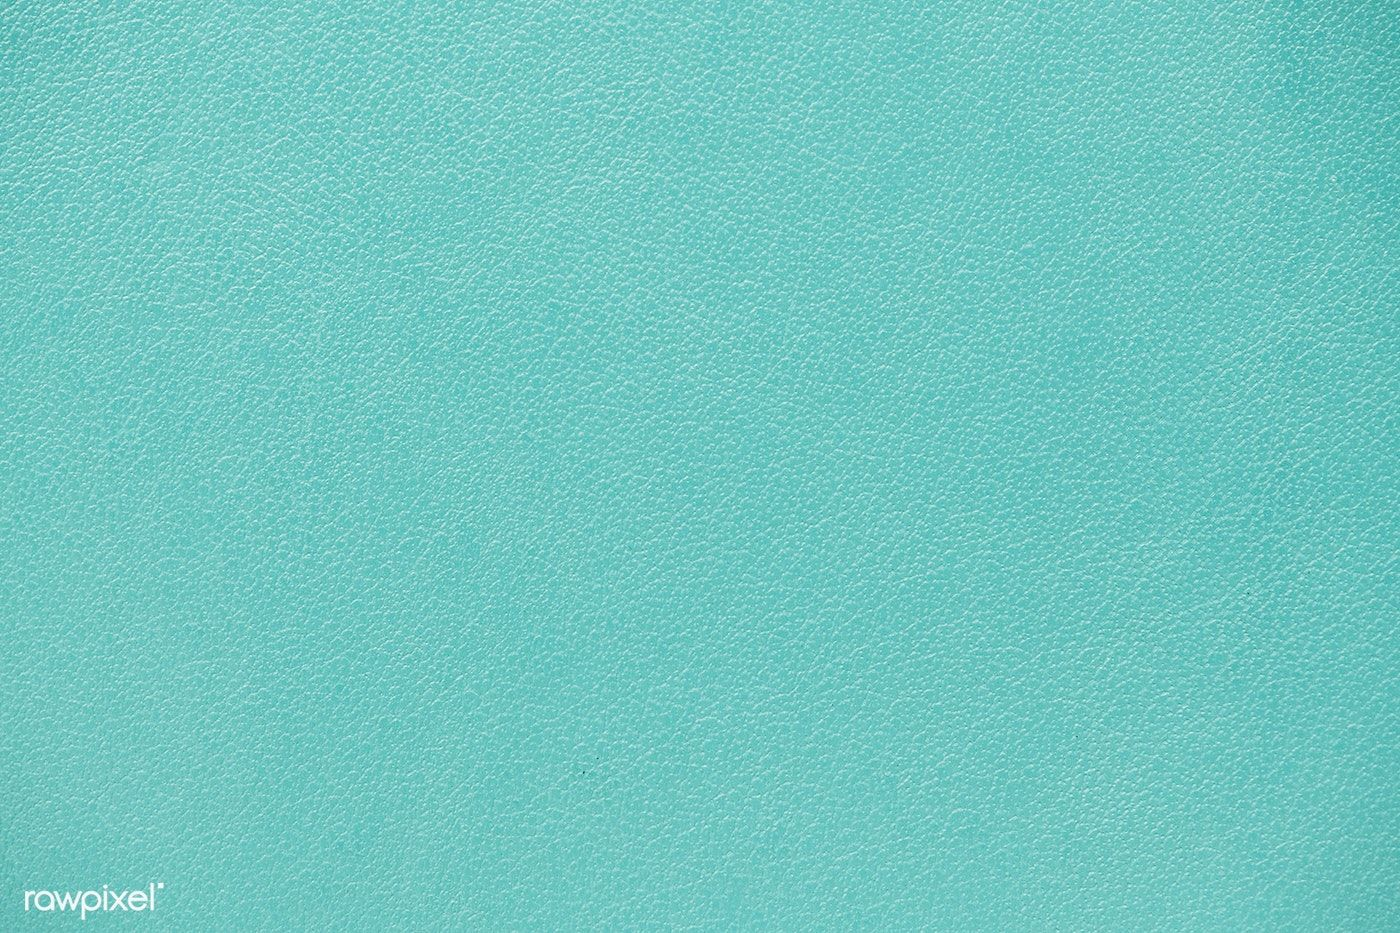 Download Premium Image Of Teal Smooth Textured Paper Background 577409 Paper Background Texture Paper Background Paper Texture